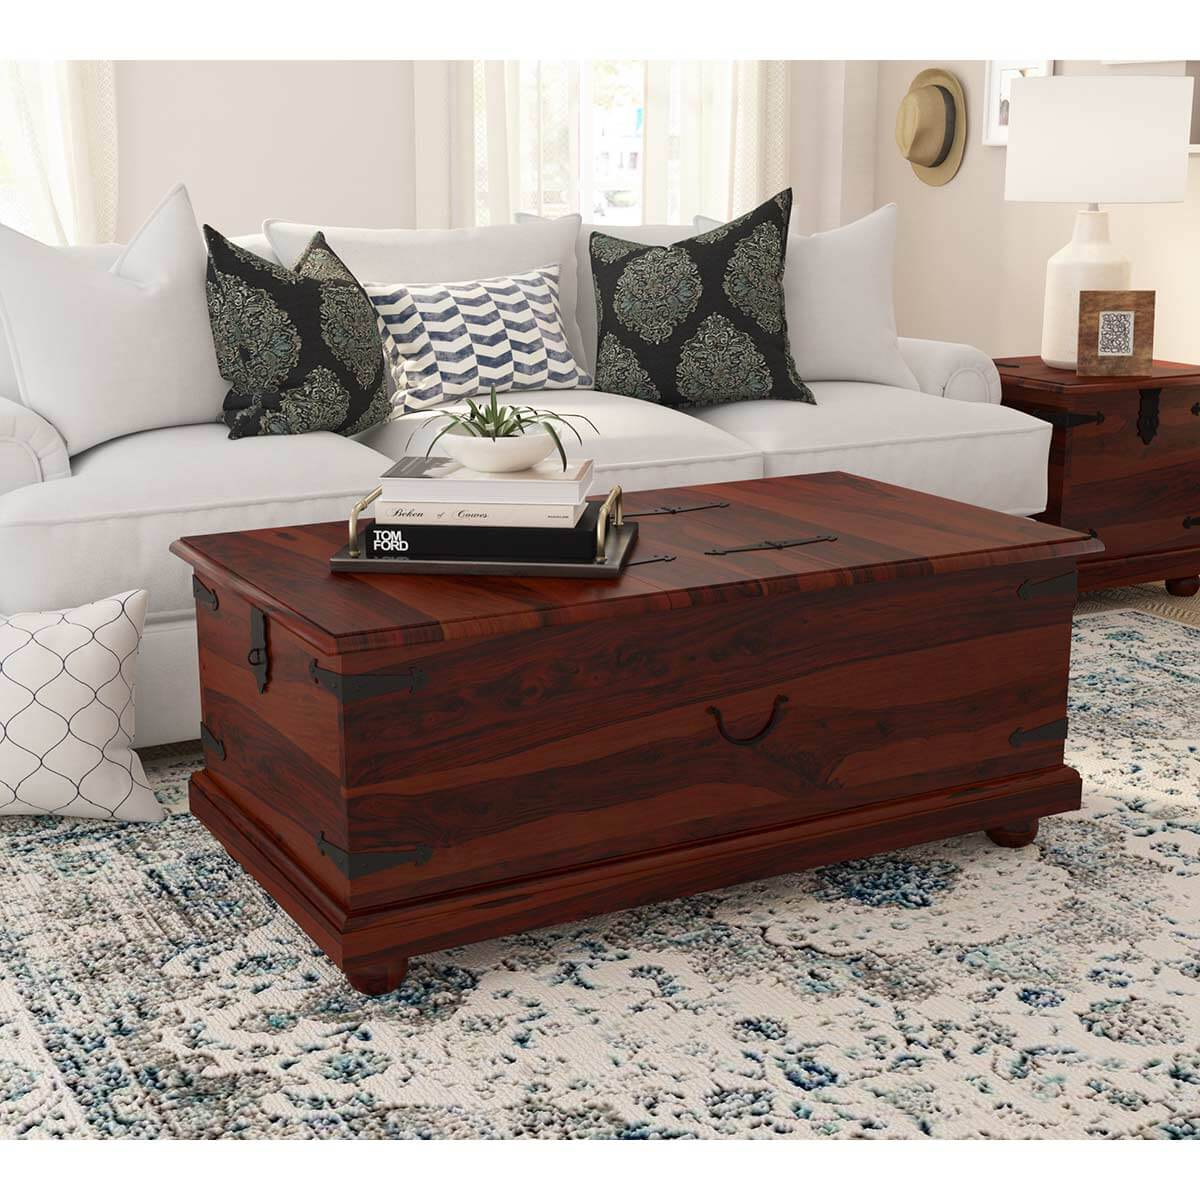 Kokanee Study Double Top Storage Trunk Coffee Table